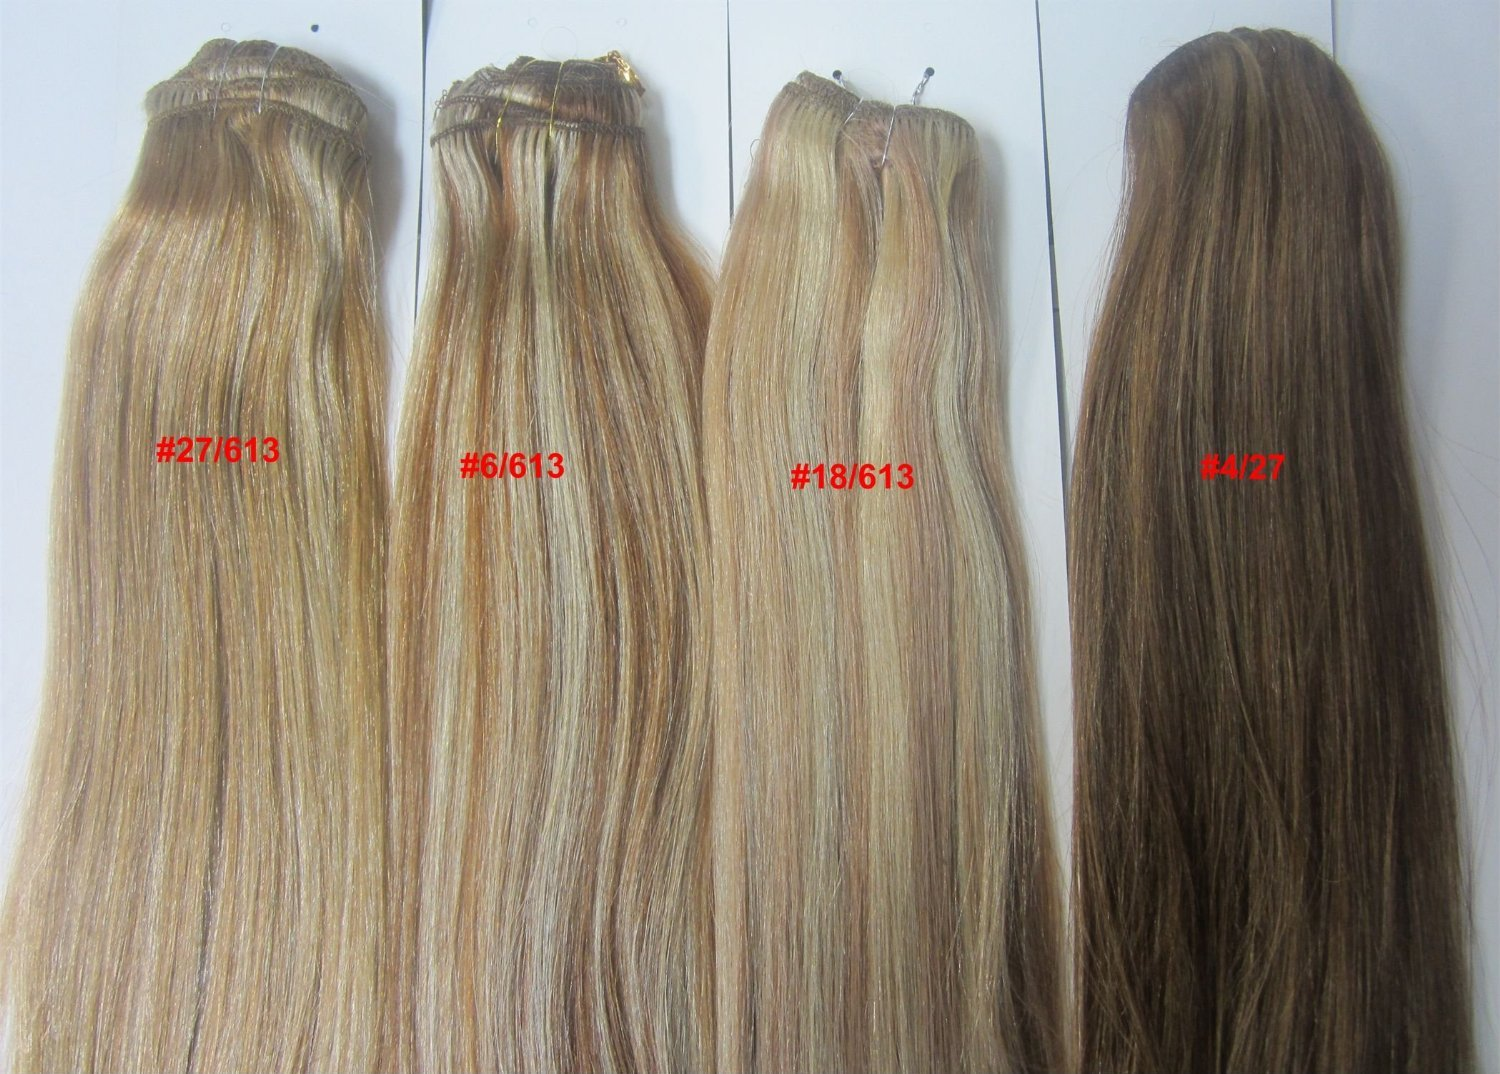 Amazon 18 clip in human hair extensions 10pcs 100g color amazon 18 clip in human hair extensions 10pcs 100g color 427 brown with blonde highlights health personal care pmusecretfo Image collections